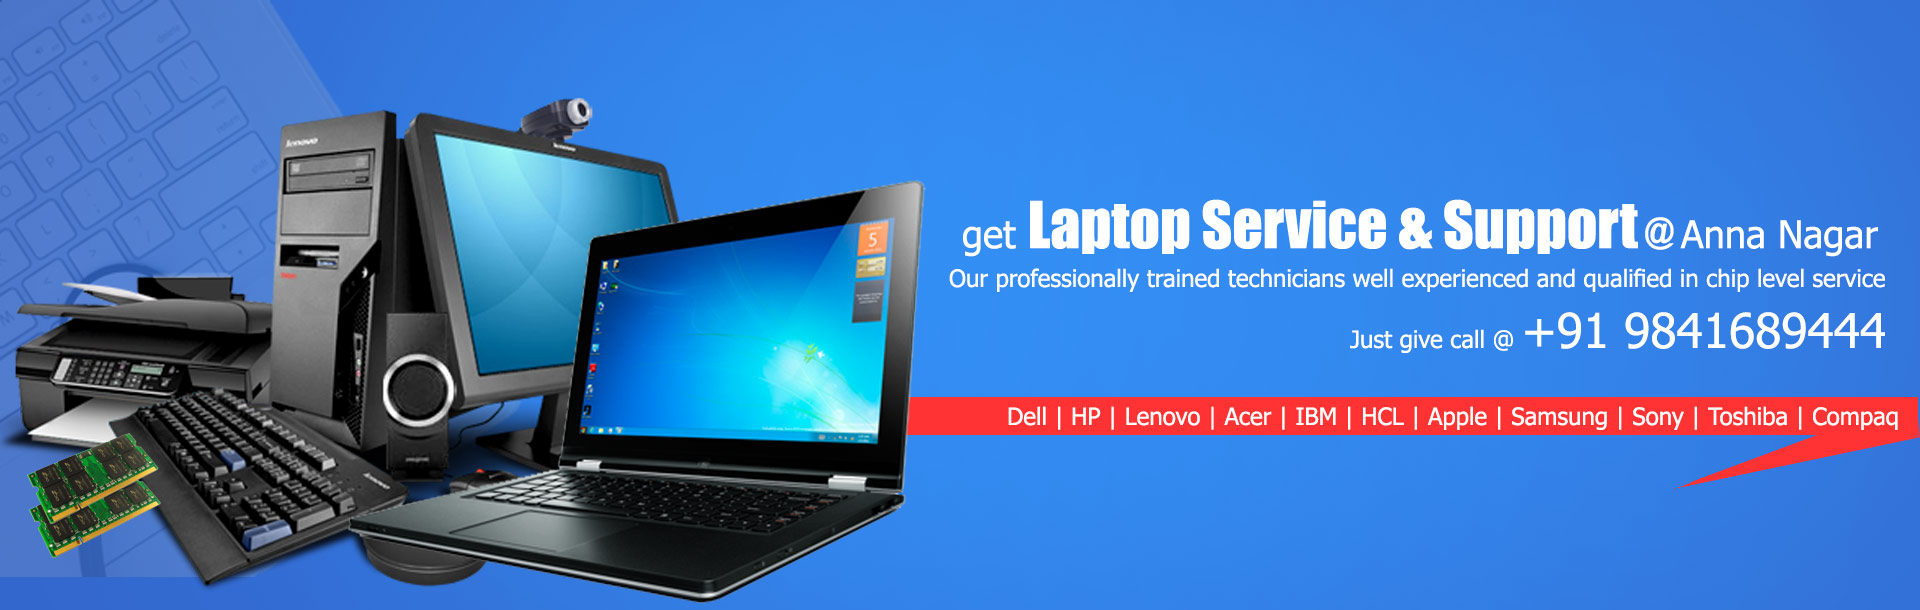 laptop service center in anna nagar, dell, hp, lenovo, acer